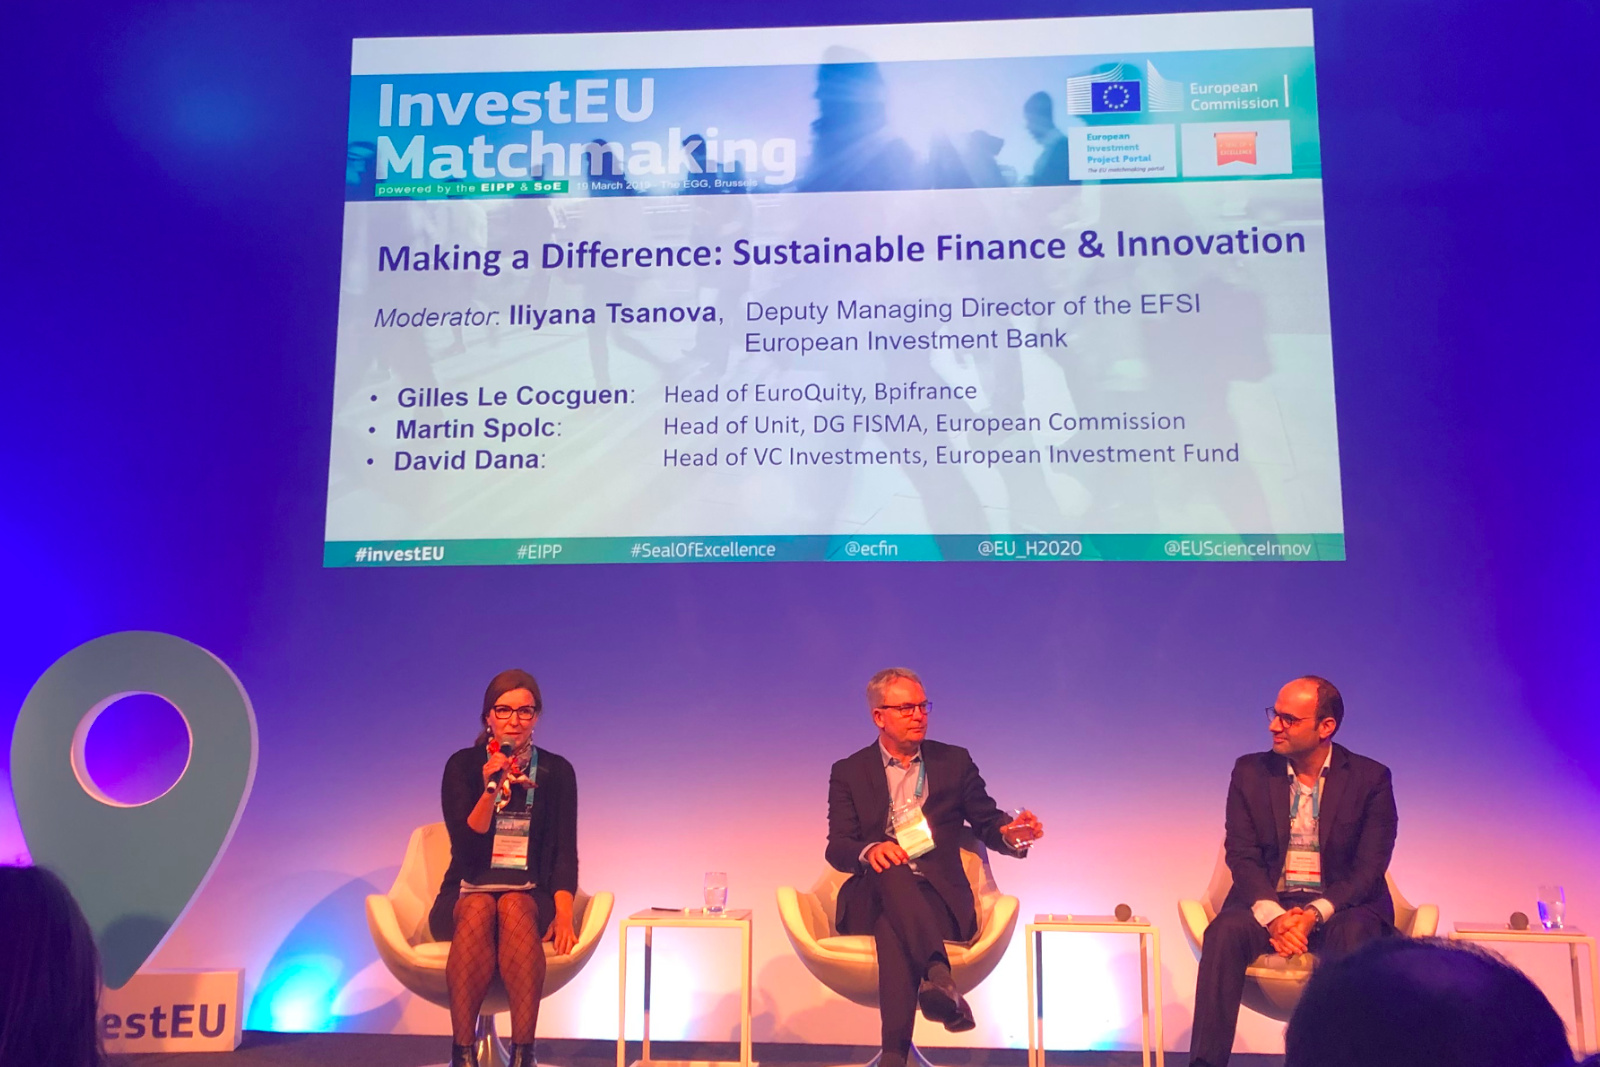 investEU-2019-finance-innovation